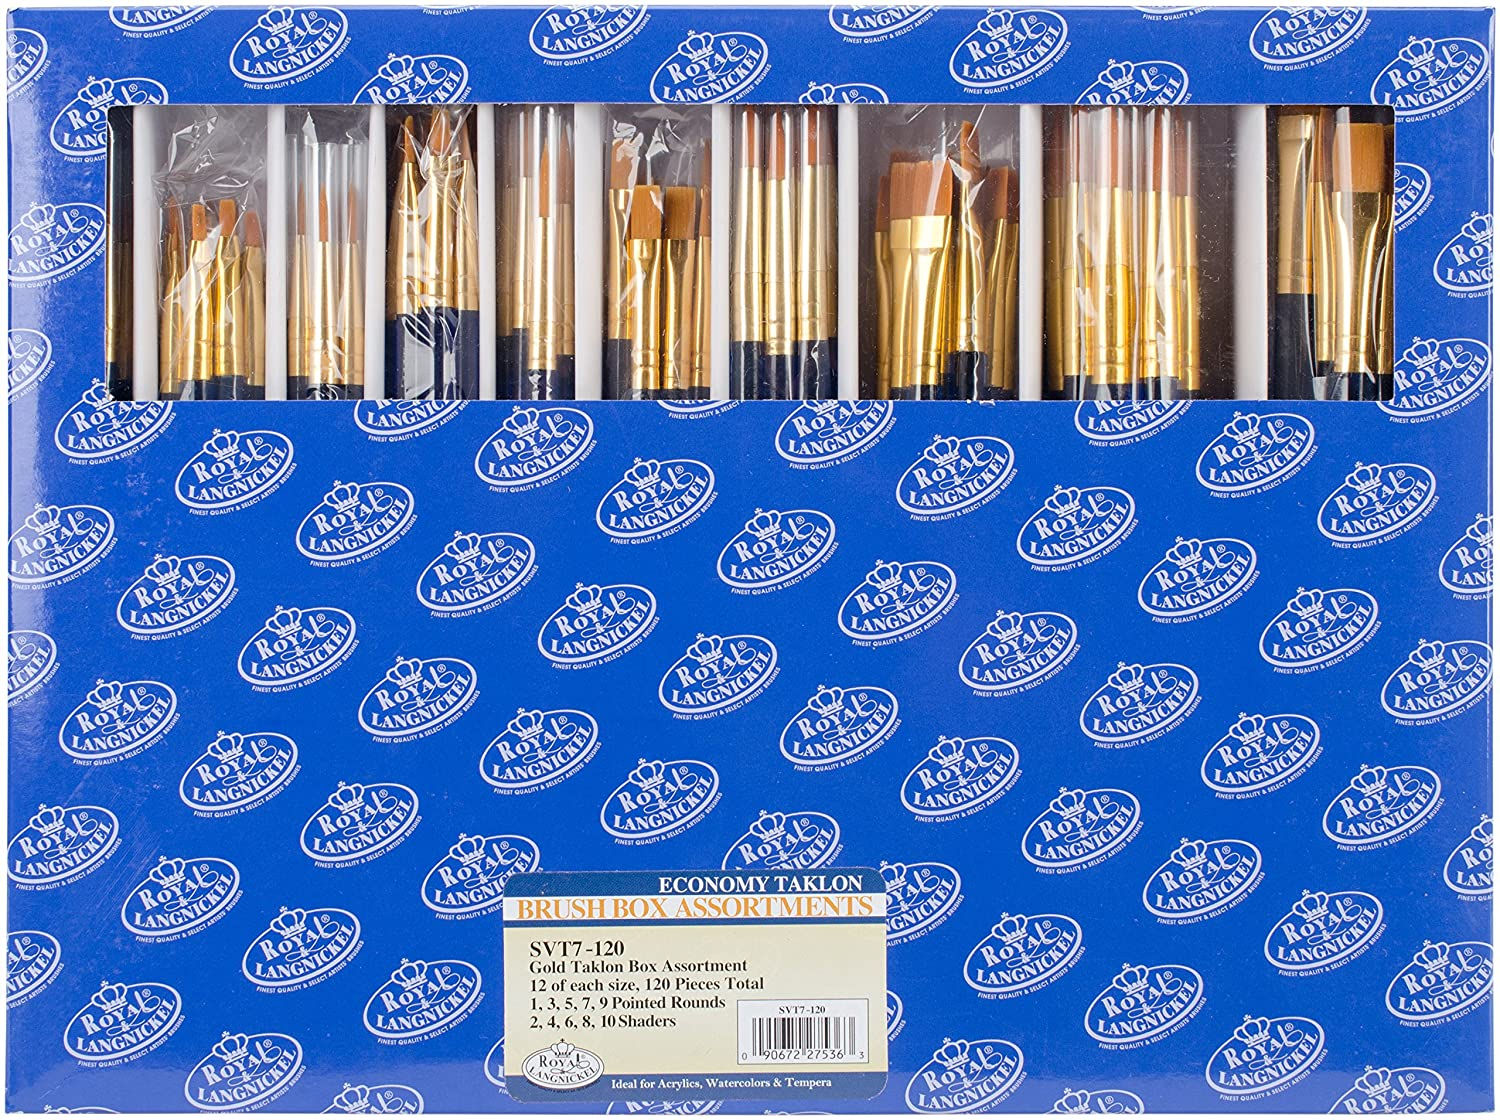 Royal & Langnickel Classroom Assortment Rounds and Flats Golden Taklon Brush, 120-Piece by Royal & Langnickel B003V190NS